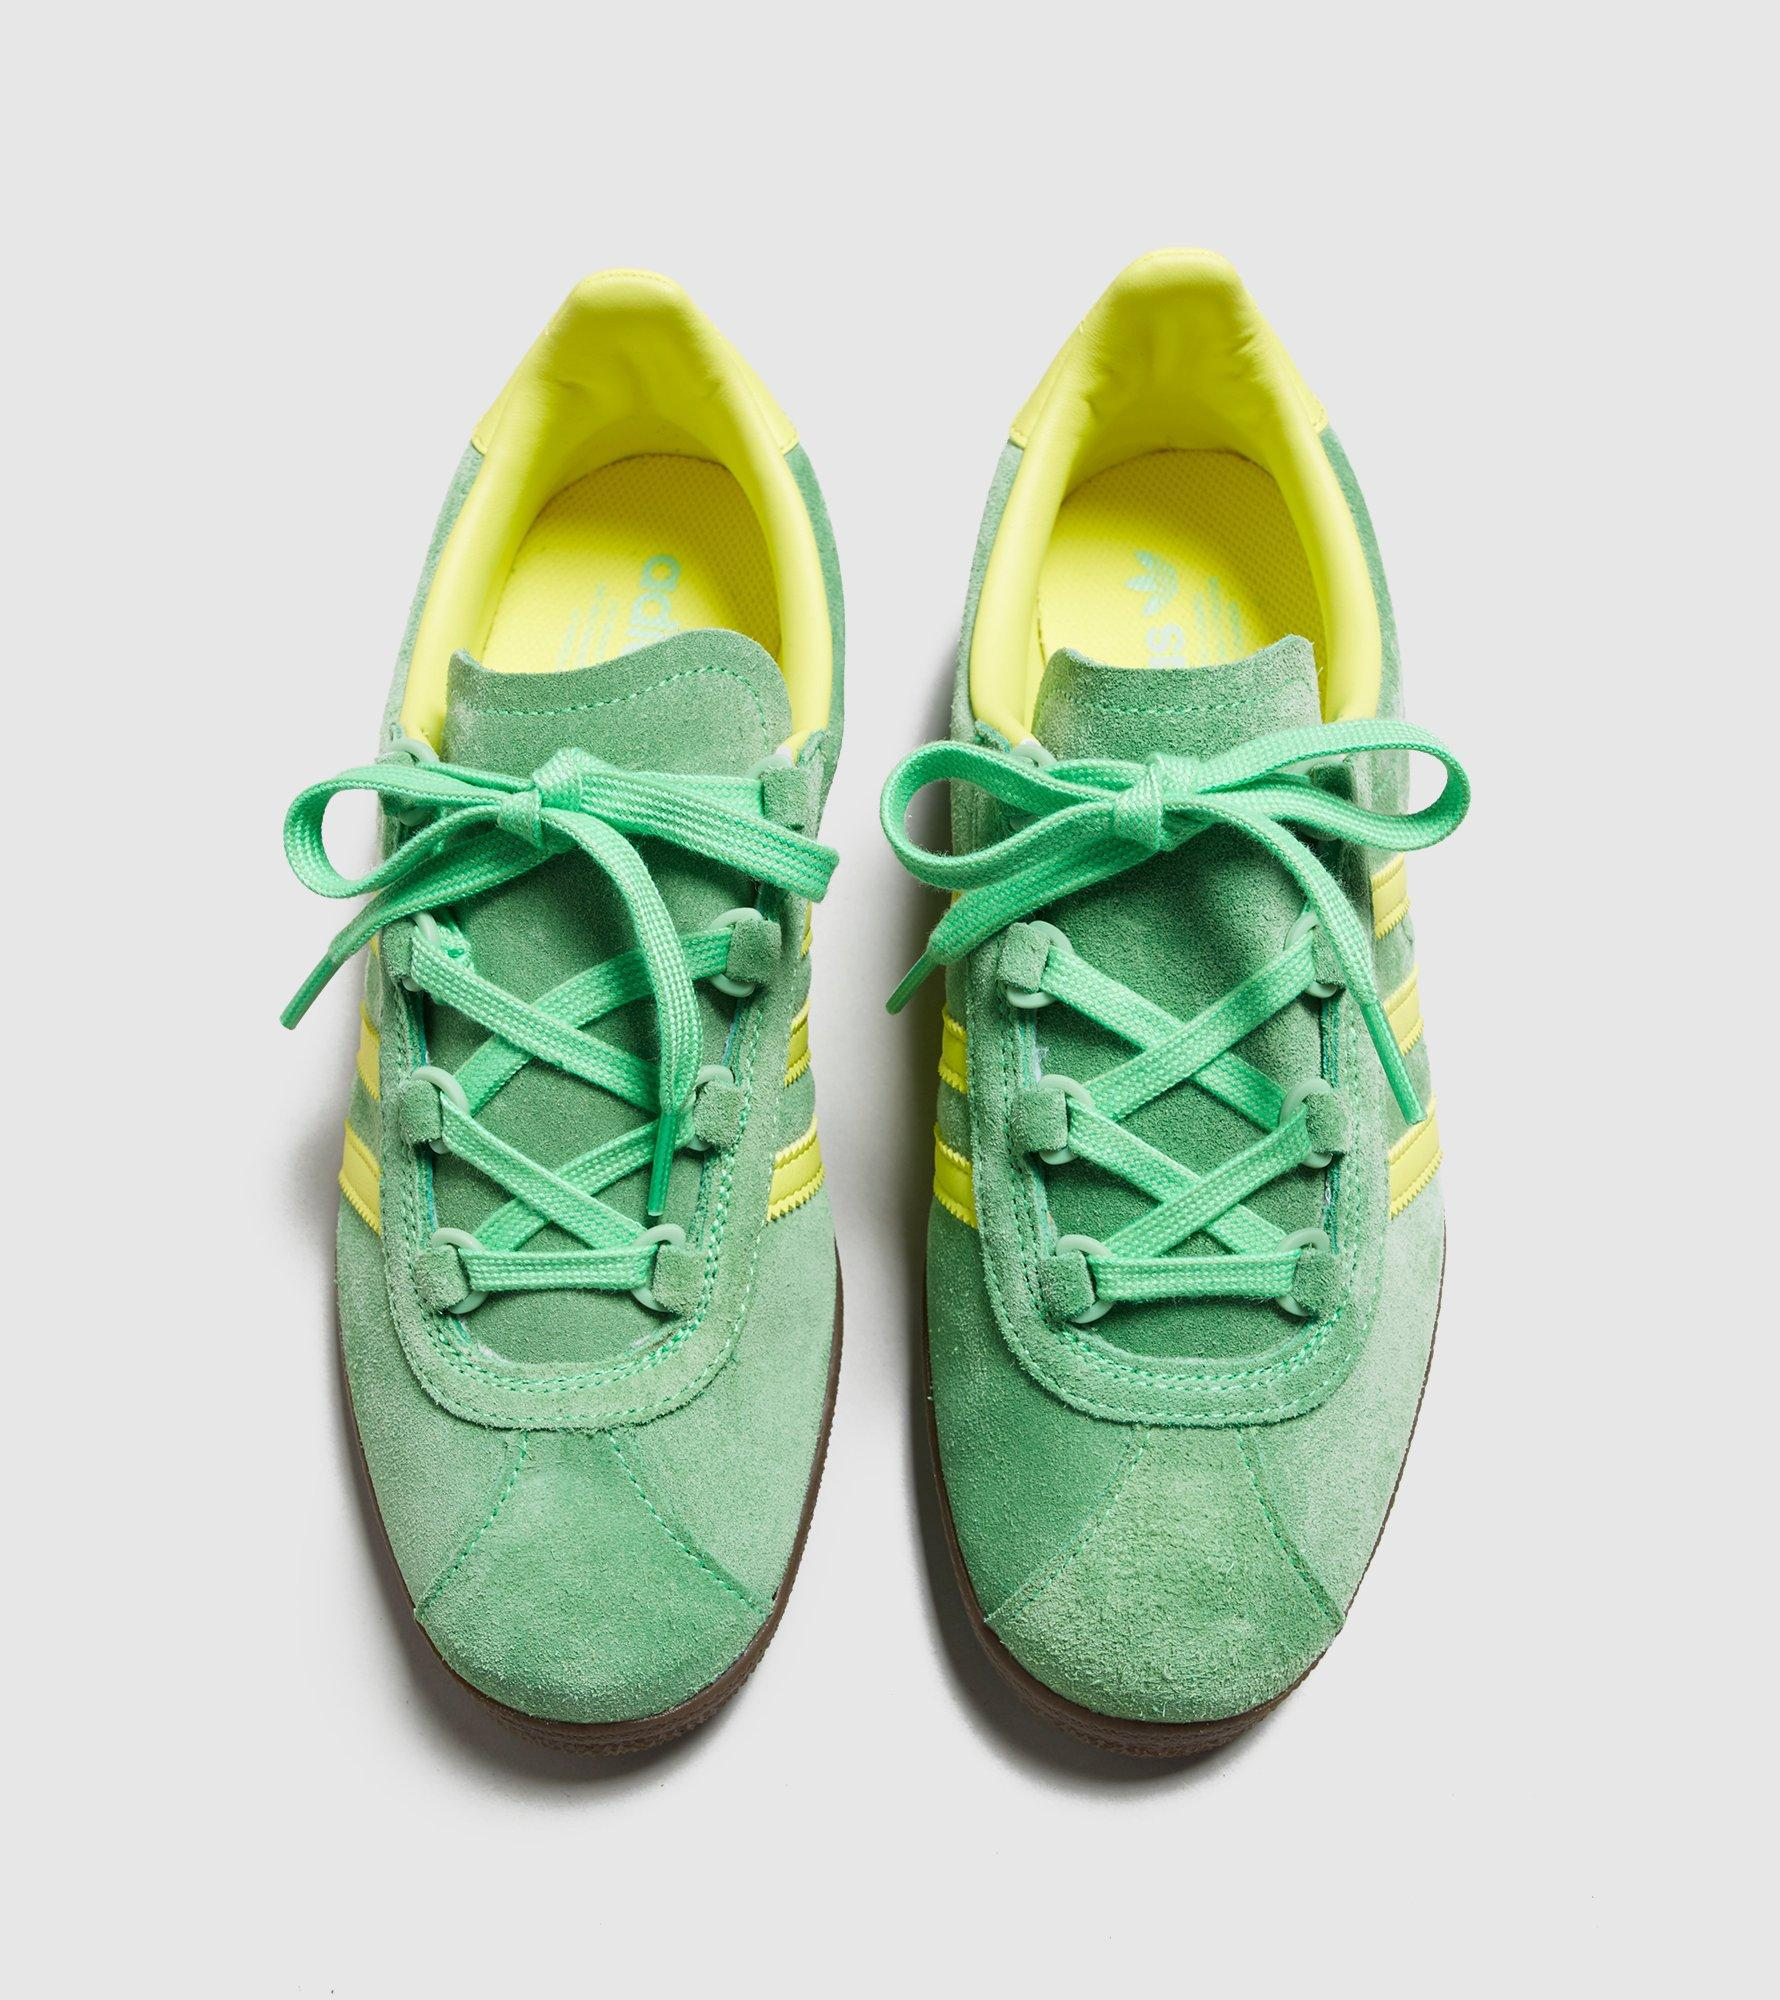 512e21e2229 adidas Originals Archive Trimm Master Og - Size  Exclusive in Green ...